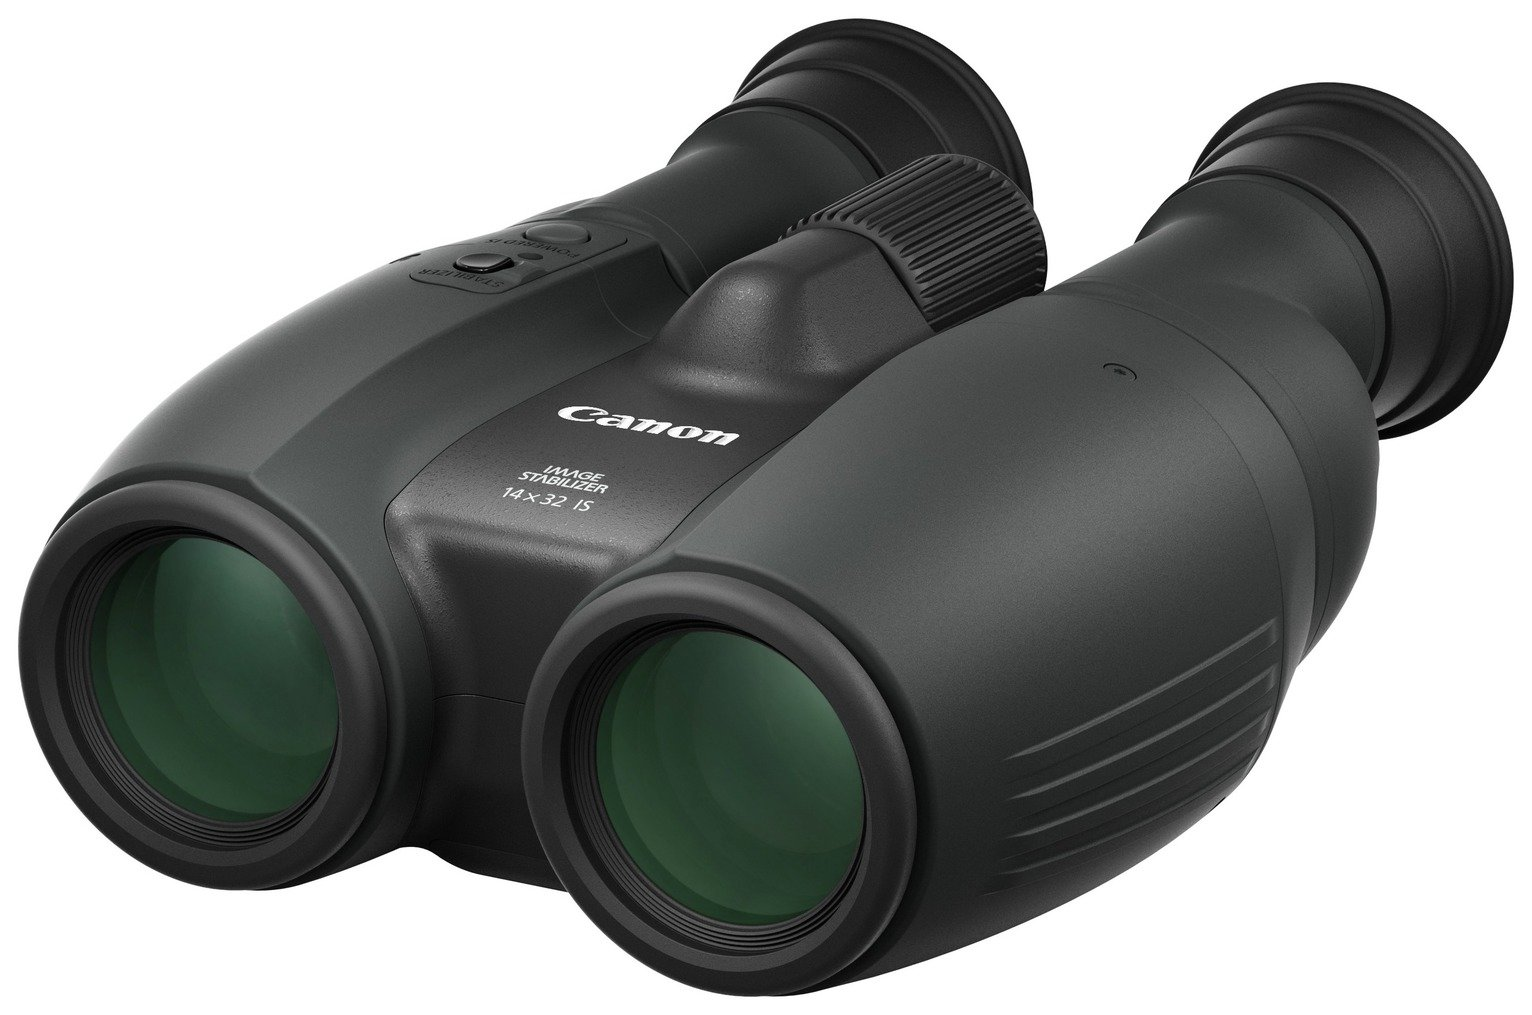 Canon 14 x 32 IS Binoculars from canon